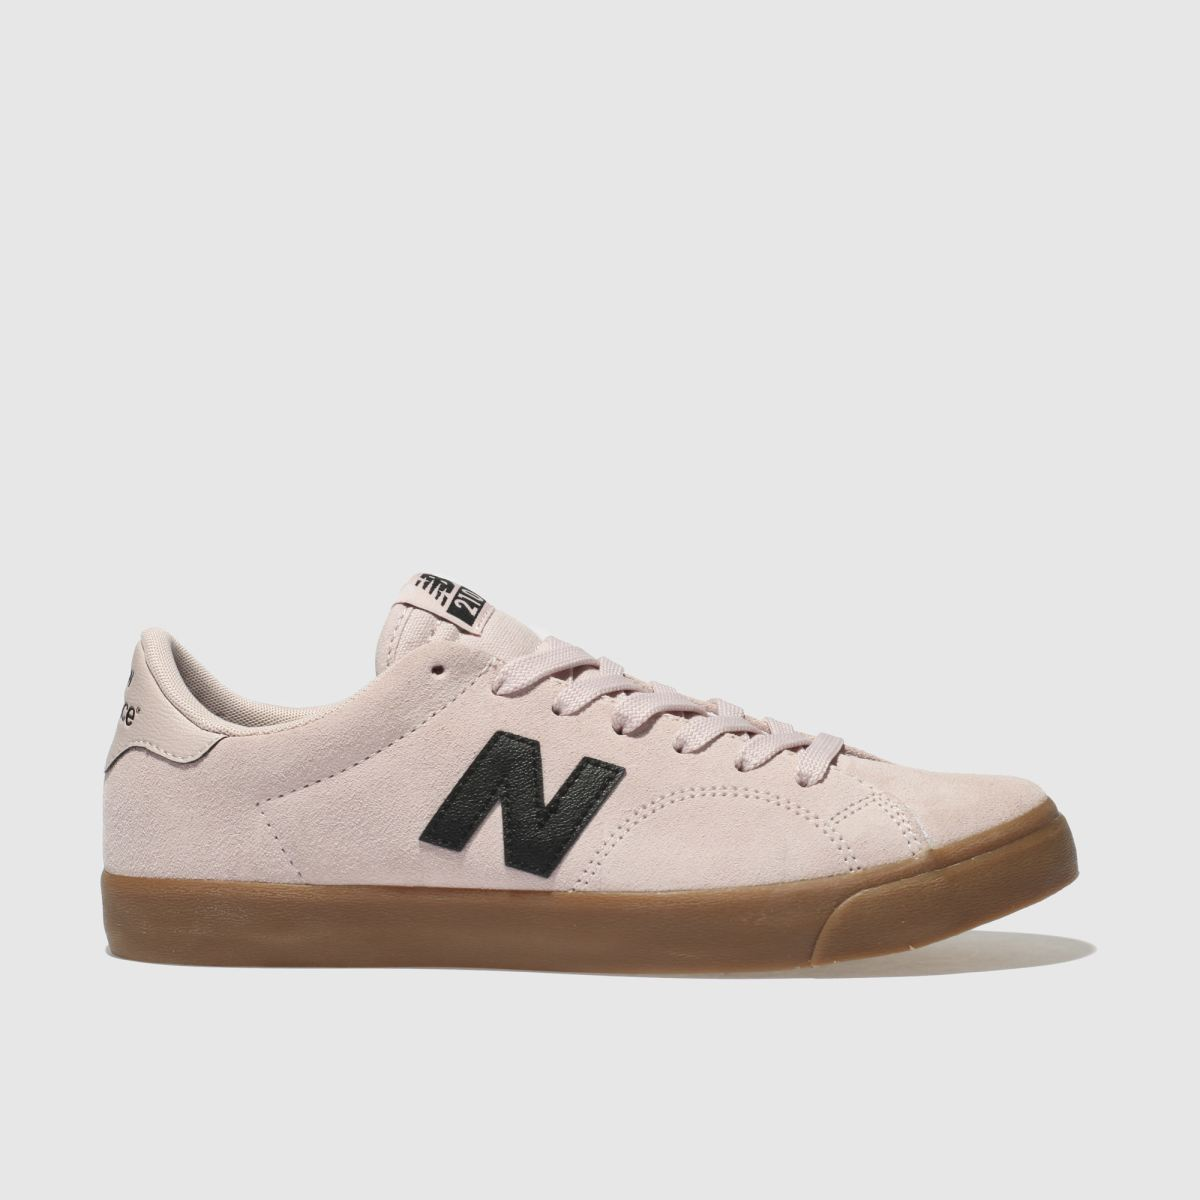 New Balance Pale Pink All Coasts 210 Trainers